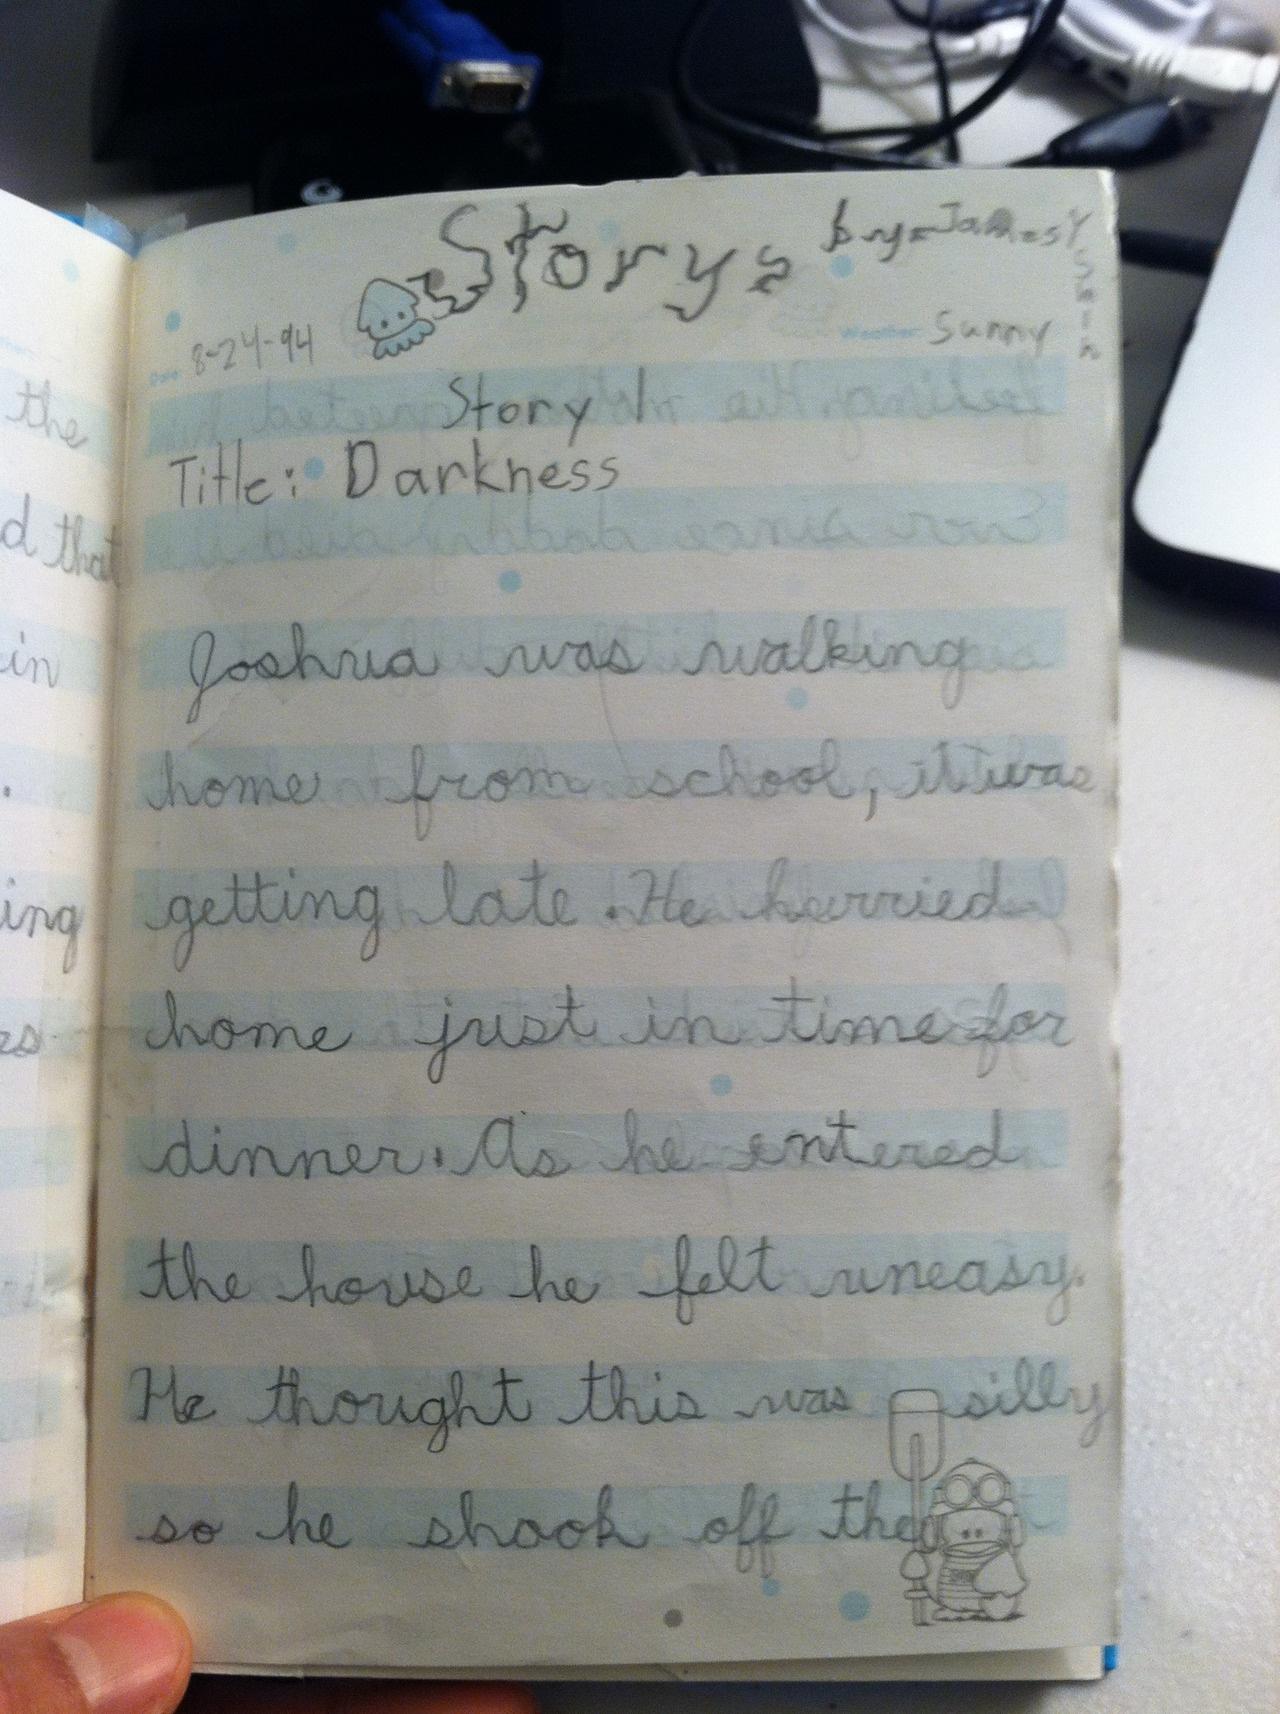 "While rummaging through my parent's house, I found a short short scary story I wrote eighteen years ago! It was during my Goosebumps™ phase. It was like finding a long, lost treasure.  Also, I learned I might've needed therapy then.   Below is the story. Just in time for Halloween.    Darkness    8/24/1994, Weather: Sunny   Joshua was walking home from school, it was getting late. He hurried home just in time for dinner. As he entered the house he felt uneasy. he thought this was silly so he shook off the feeling. His mother greeted him.   Ever since daddy died she seemed a little different. It was really dark now. Joshua finished his dinner. He go's outside into the darkness. People are still talking about the death of his father. ""Death,"" thought Joshua, is it dark and scary? A hand grabbed his shoulder. ""What the"", Joshua turns around and see's his father. Before he could scream a darkness swept over him.   He wakes up and he walks to his house. His mother was lying in her bed. He walks to the graveyard. All of a sudden blood gushes out of him, and his guts blow up. it is dark, it is death."